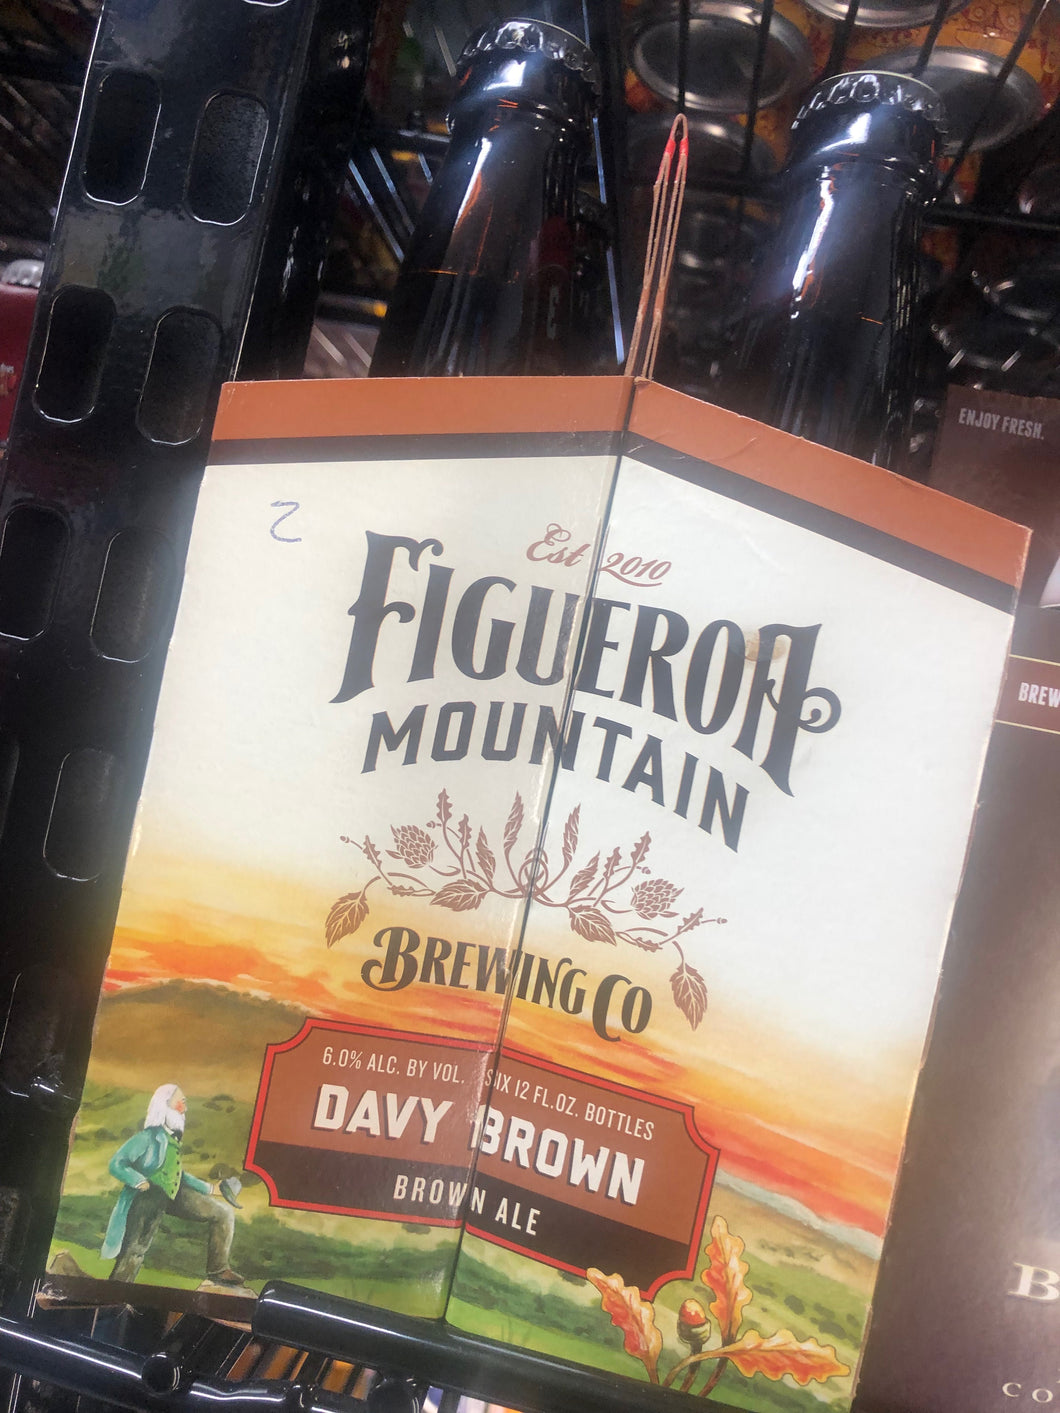 Figeroa Mountain Davy Brown Ale 12oz Bottles 6 pk